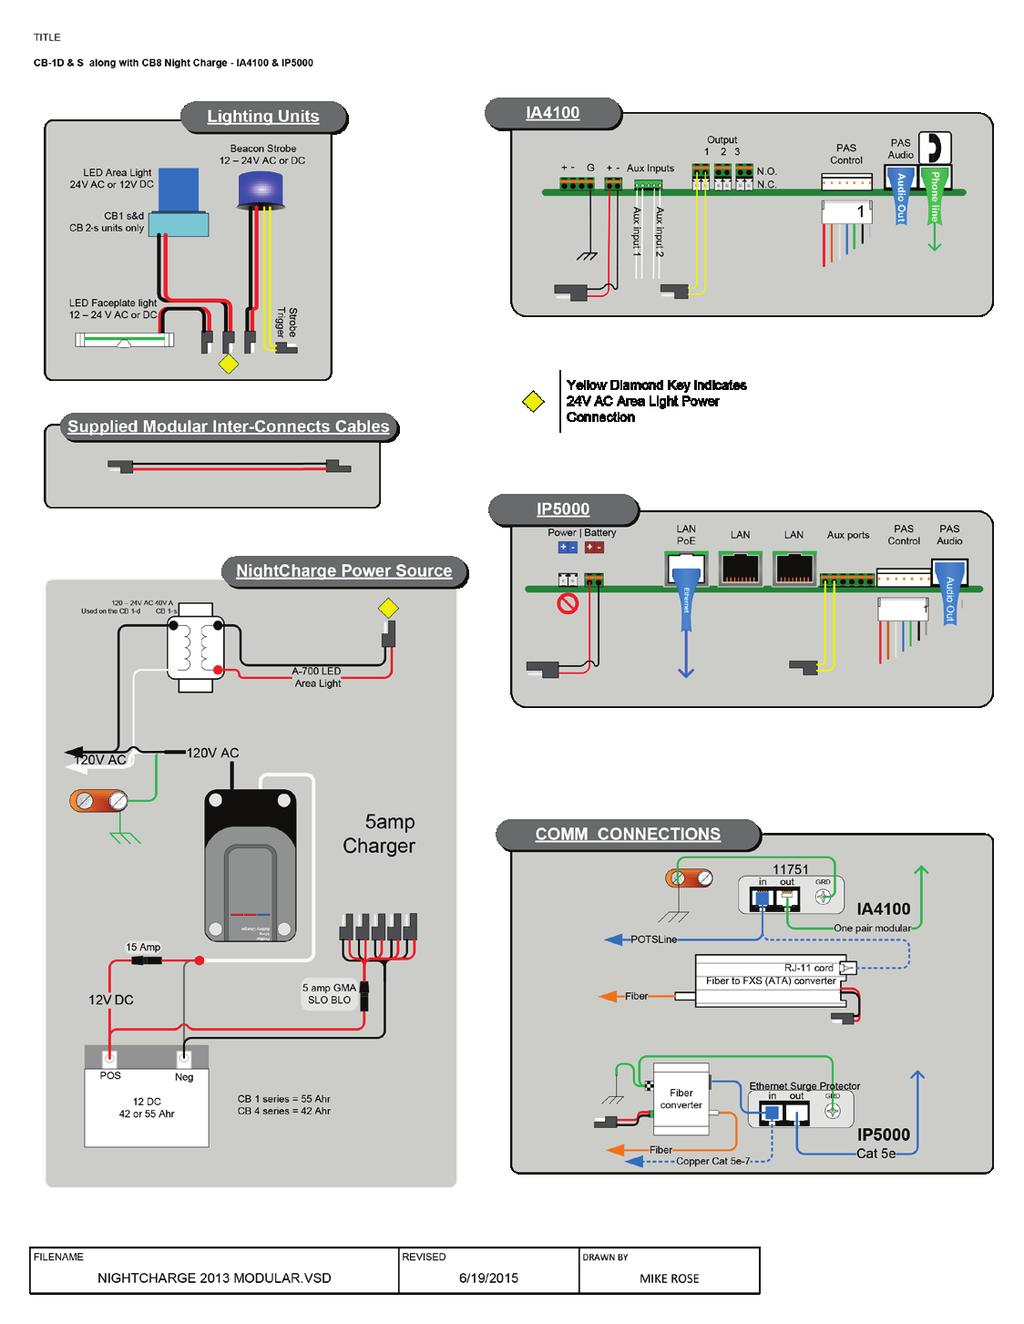 Cb 1 Series Administrator Guide Installation Configuration Wiring 24v To Ac Dc 37 Nightcharge And Product Diagram Shown Reasonably Represents Current Offering